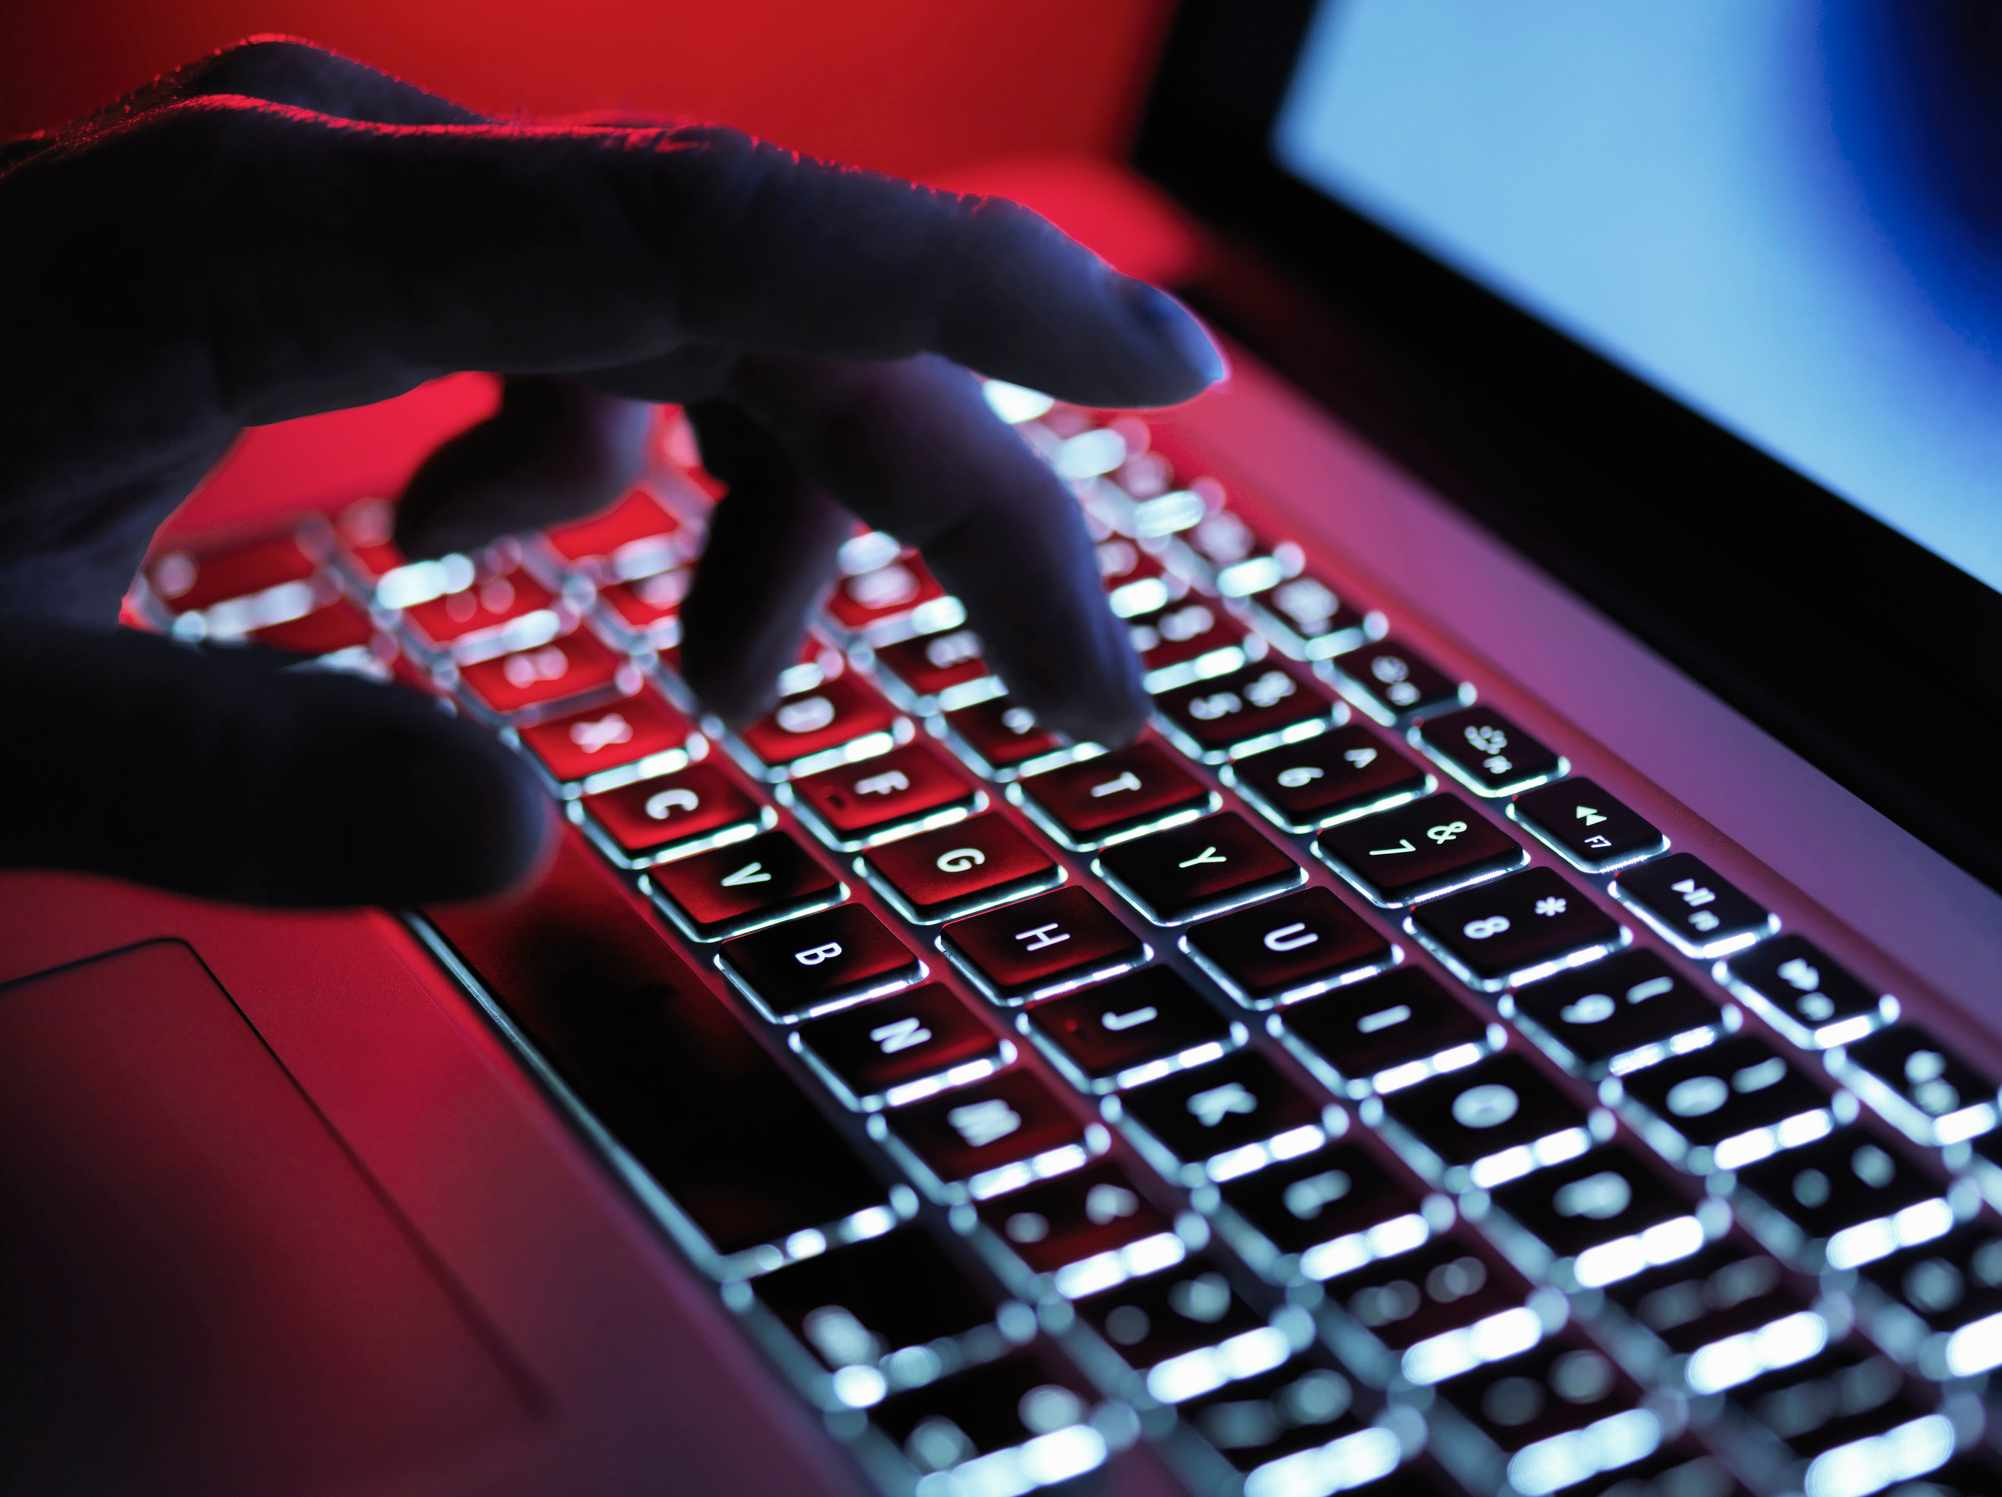 Is it possible to encrypt the data on my laptop? © Getty Images